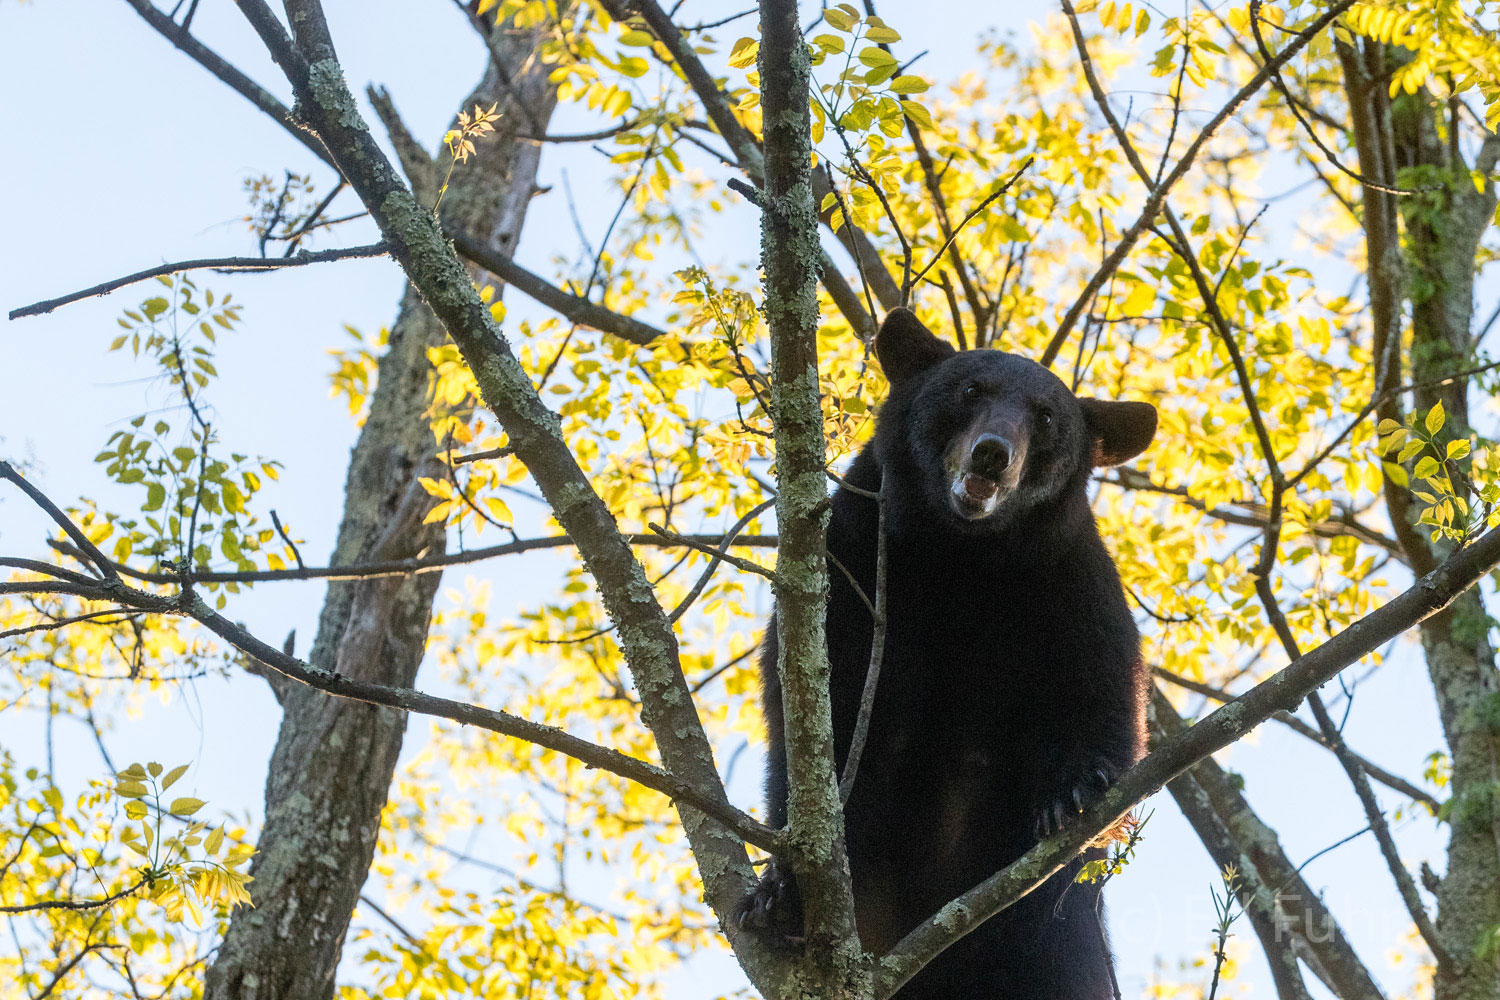 A black bear stares down from the tree where he has been feeding on spring's early growth.